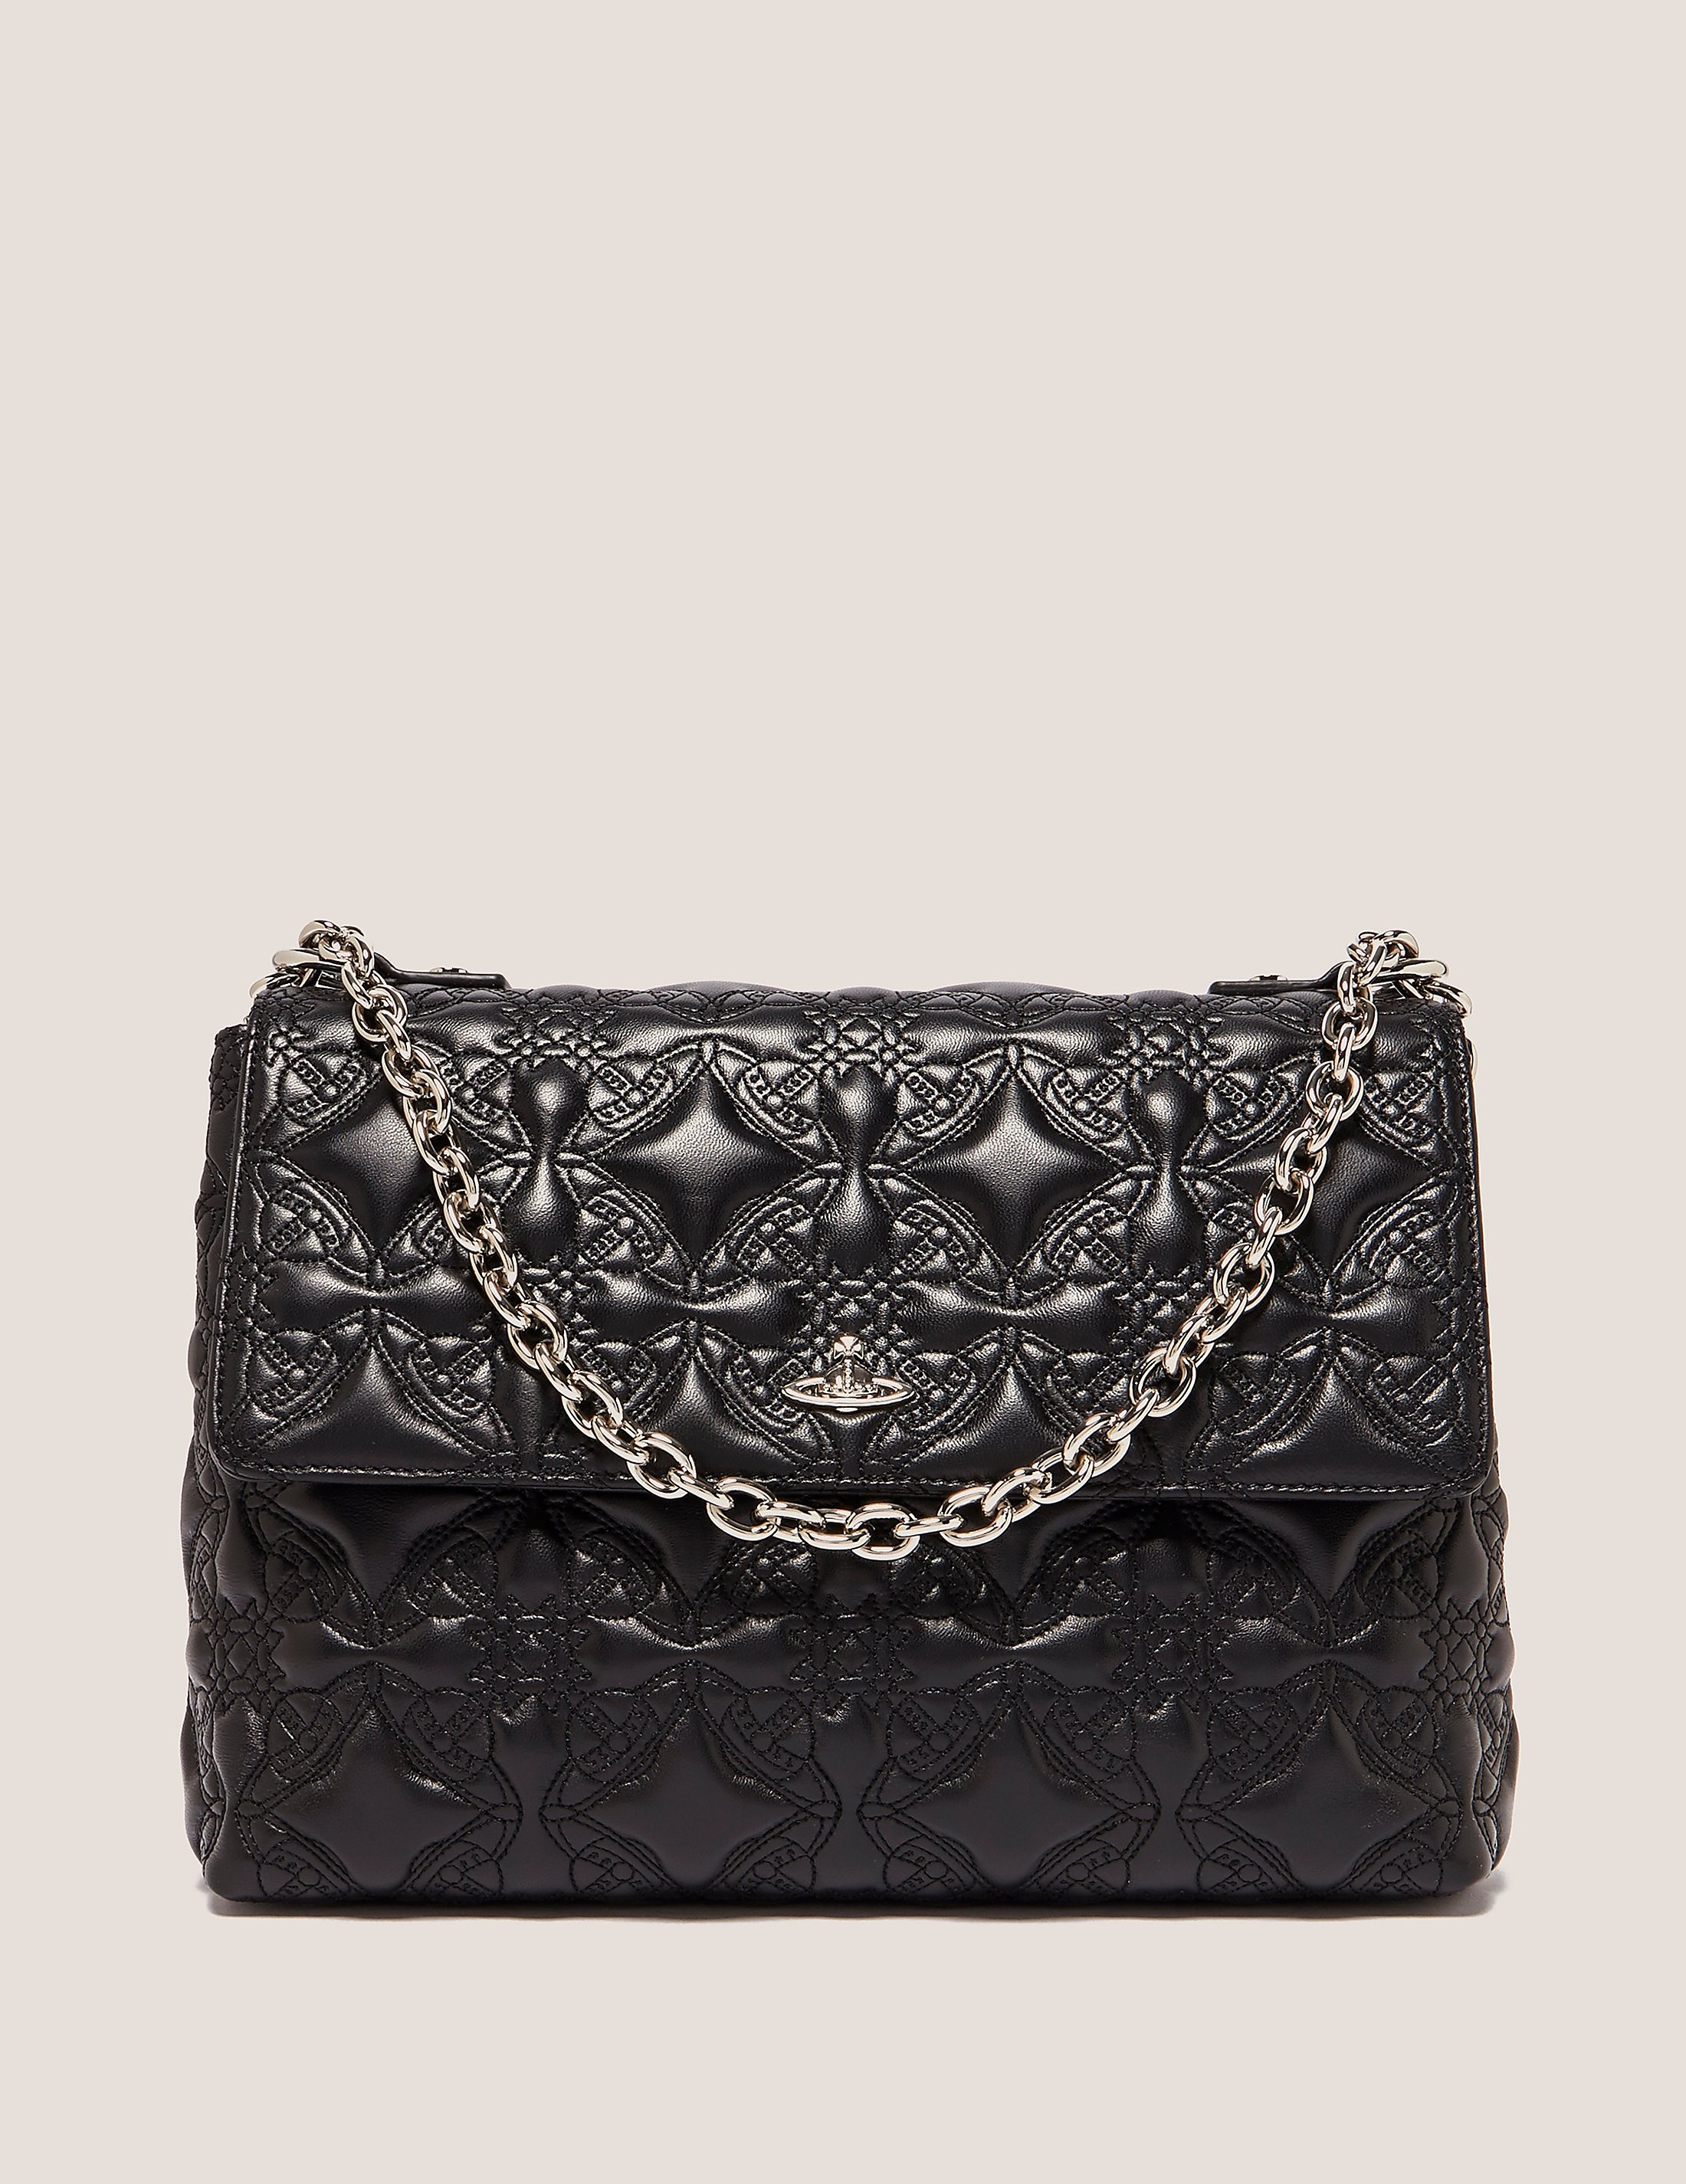 Vivienne Westwood Conventry Chain Bag